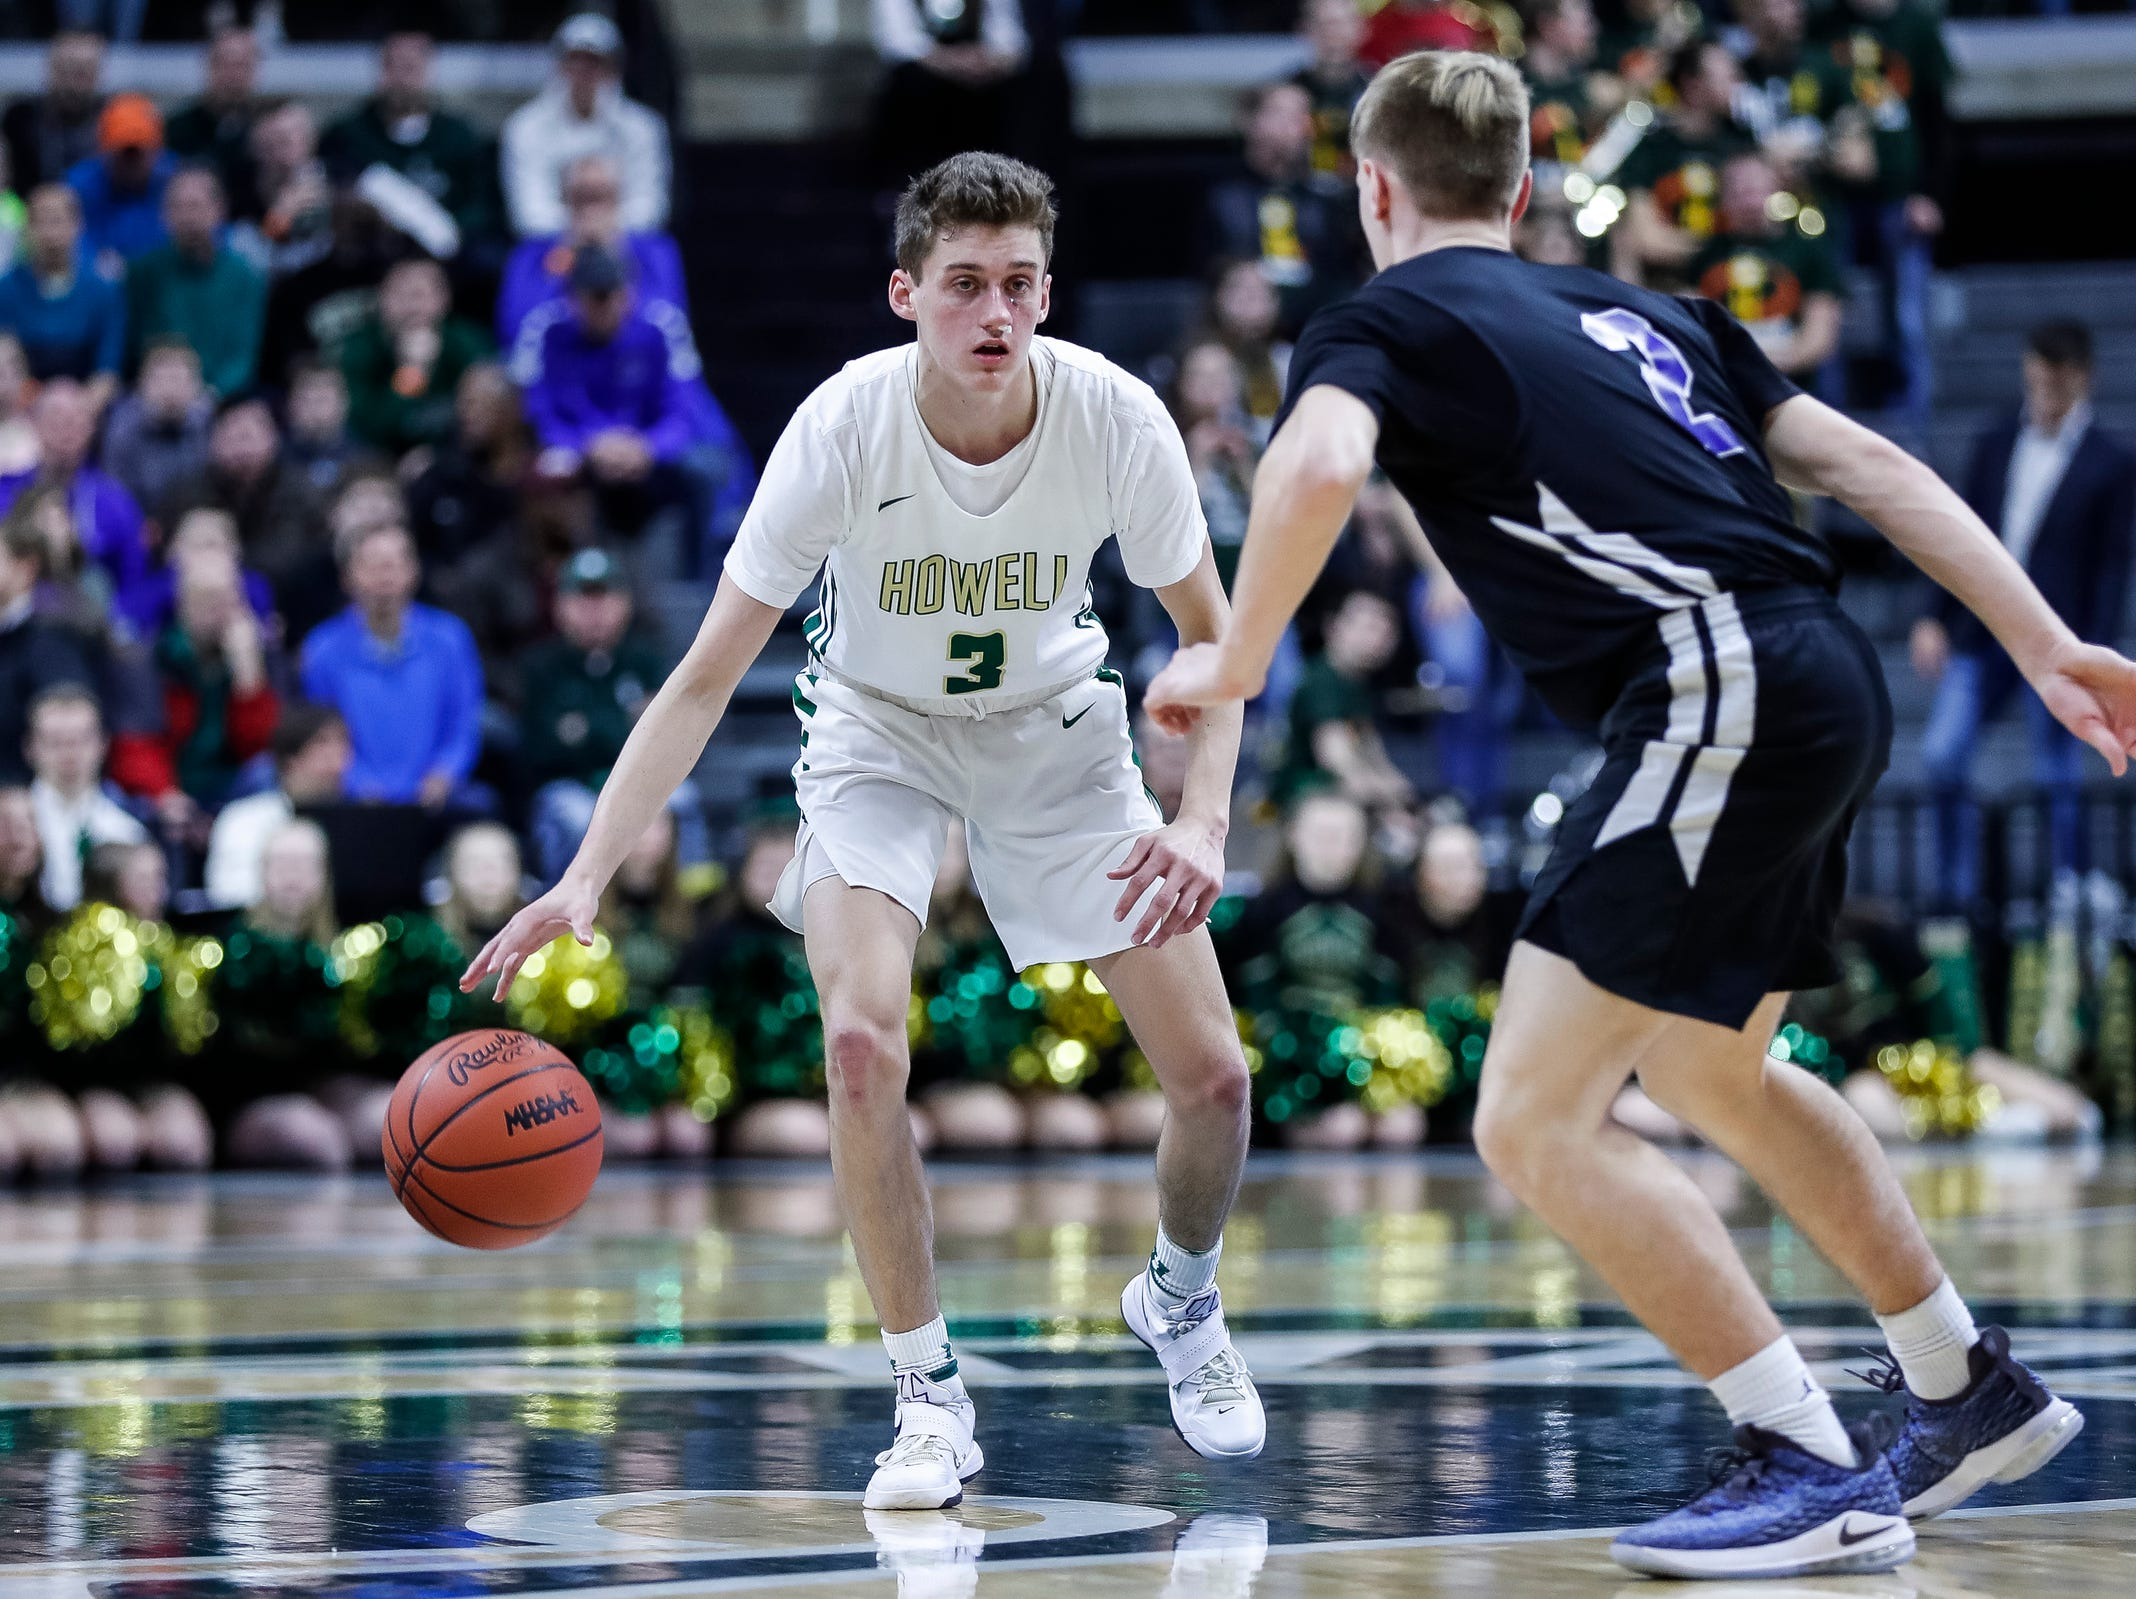 Howell's Kip French (3) dribbles against Ypsilanti Lincoln's Cameron Johnson (2) during the first half of MHSAA Division 1 semifinal at the Breslin Center in East Lansing, Friday, March 15, 2019.